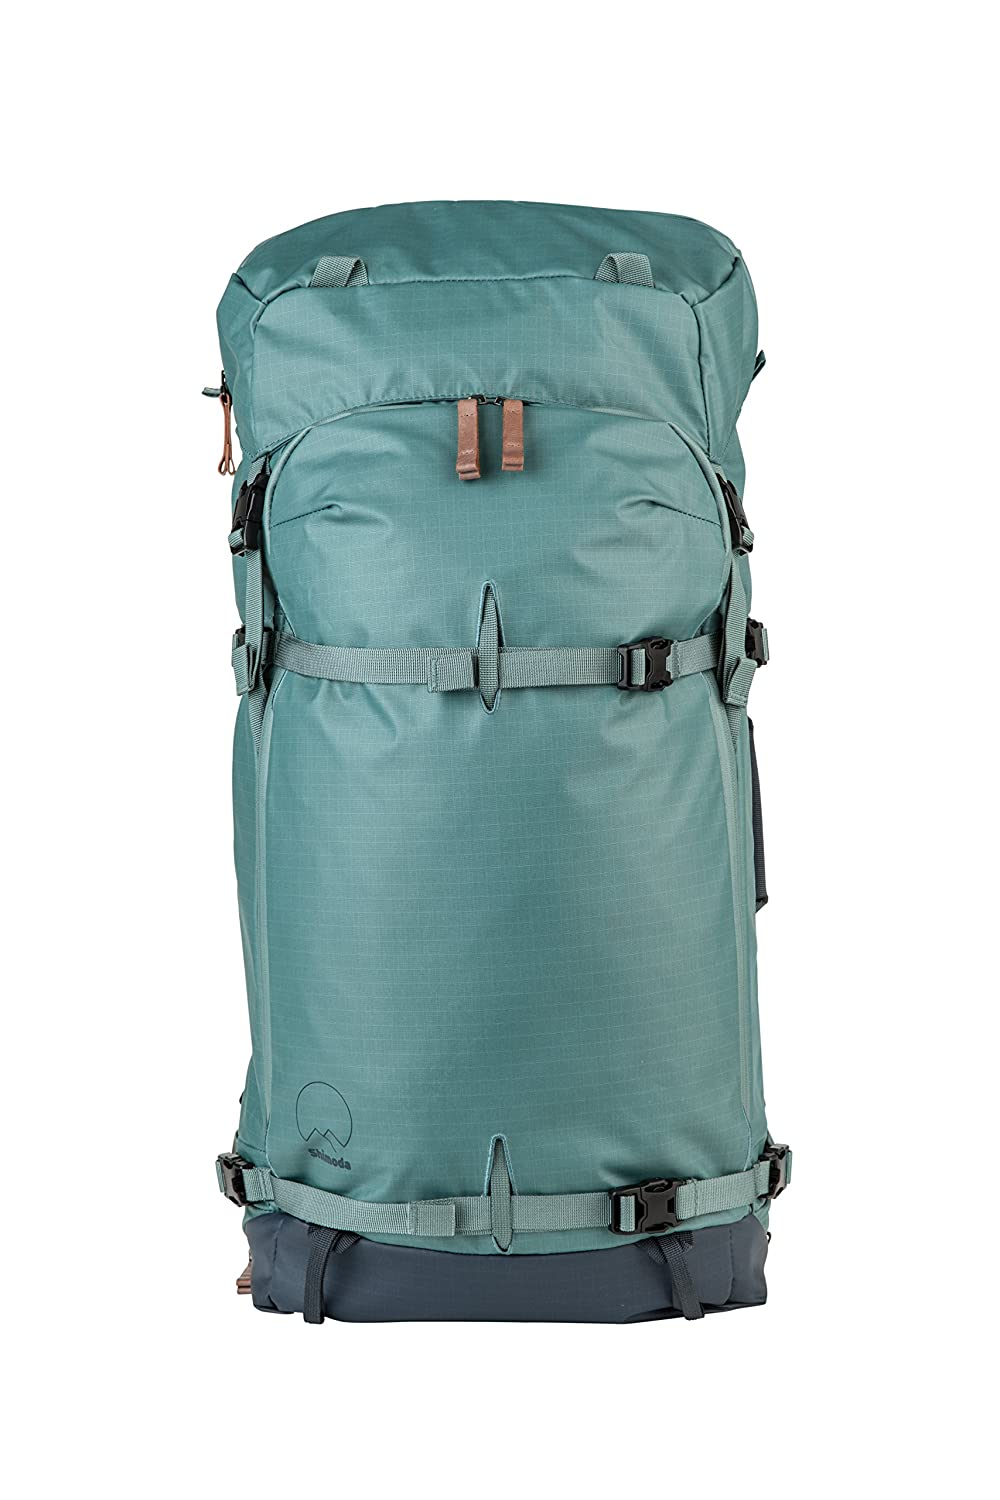 Explore 60 Backpack (Sea Pine)   B07BKMS2WP